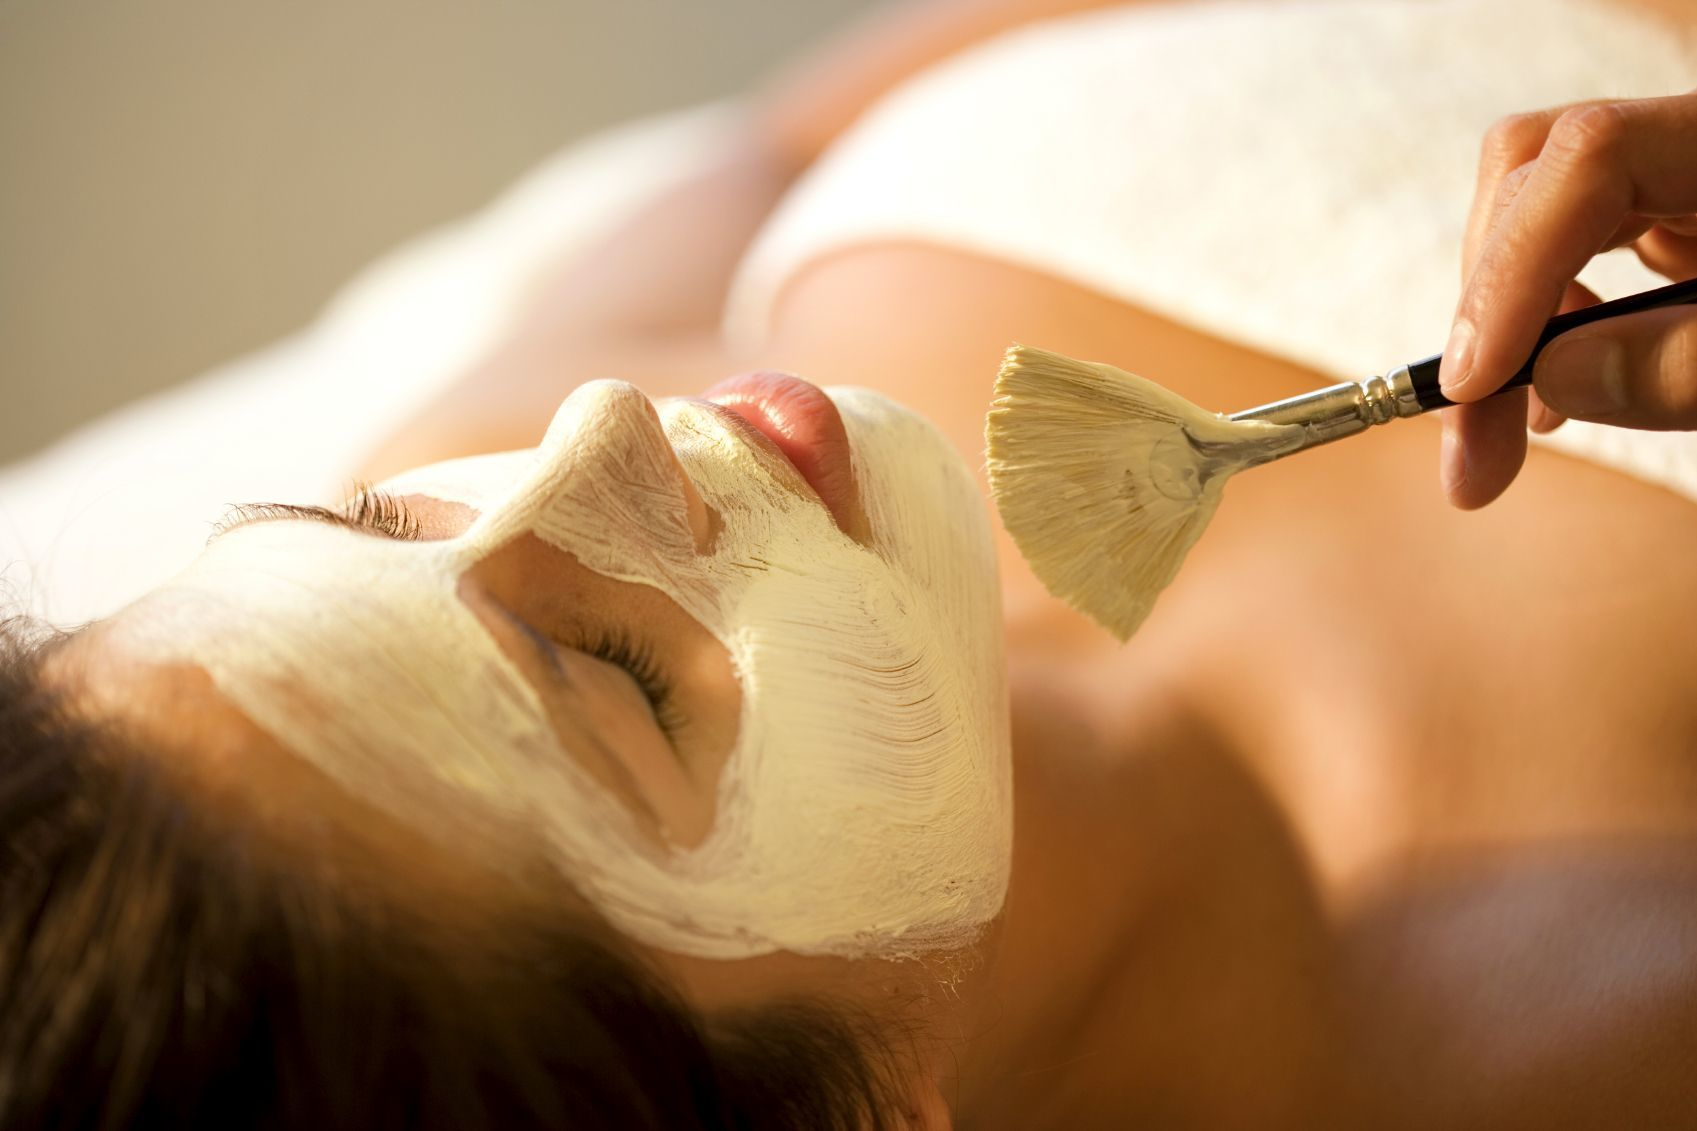 Rf the spa facial treatement lg xvkue2